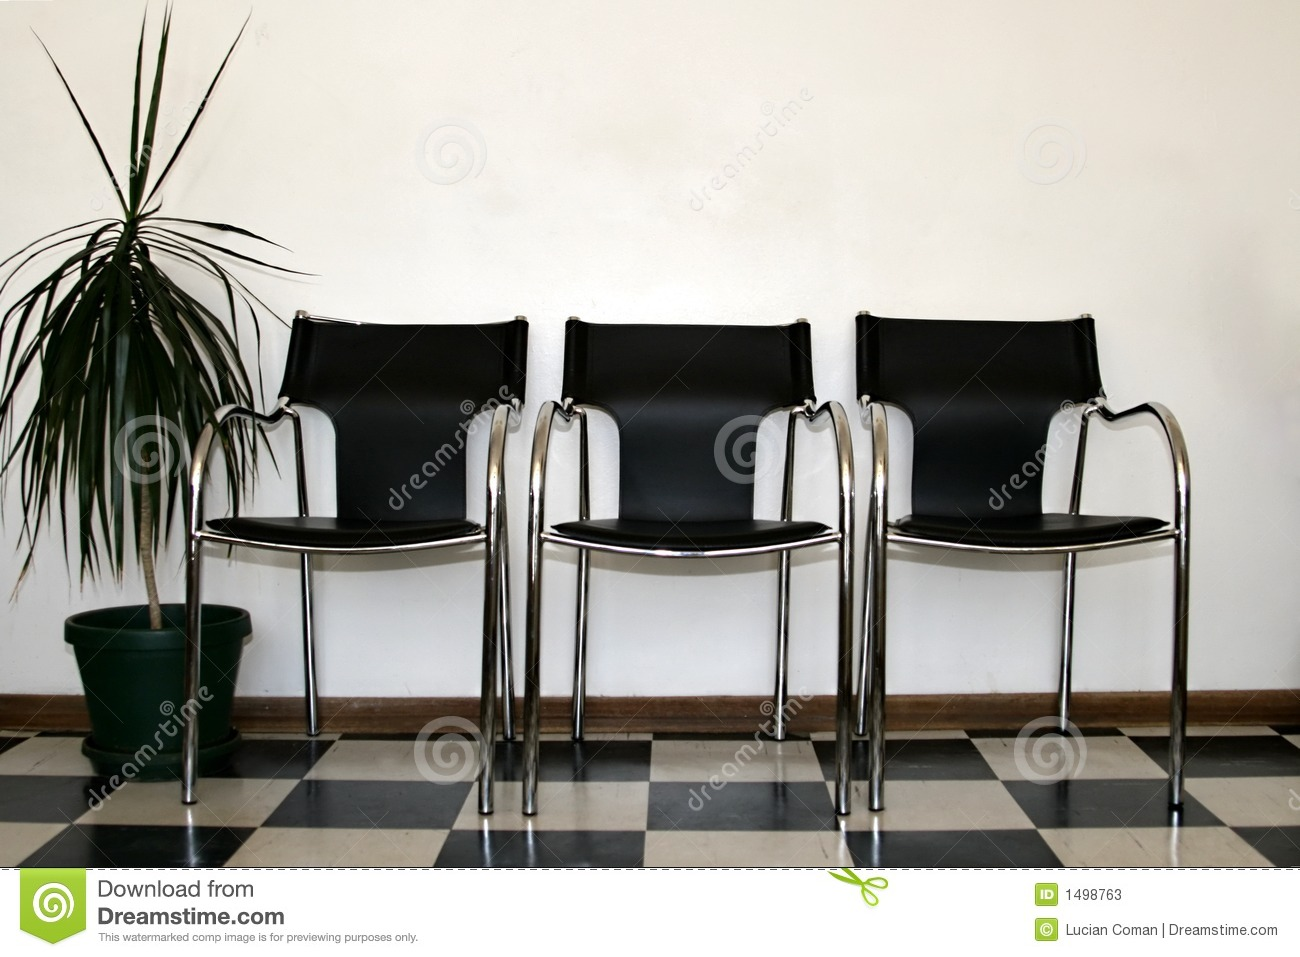 Chairs waiting room stock image Image of polished rest